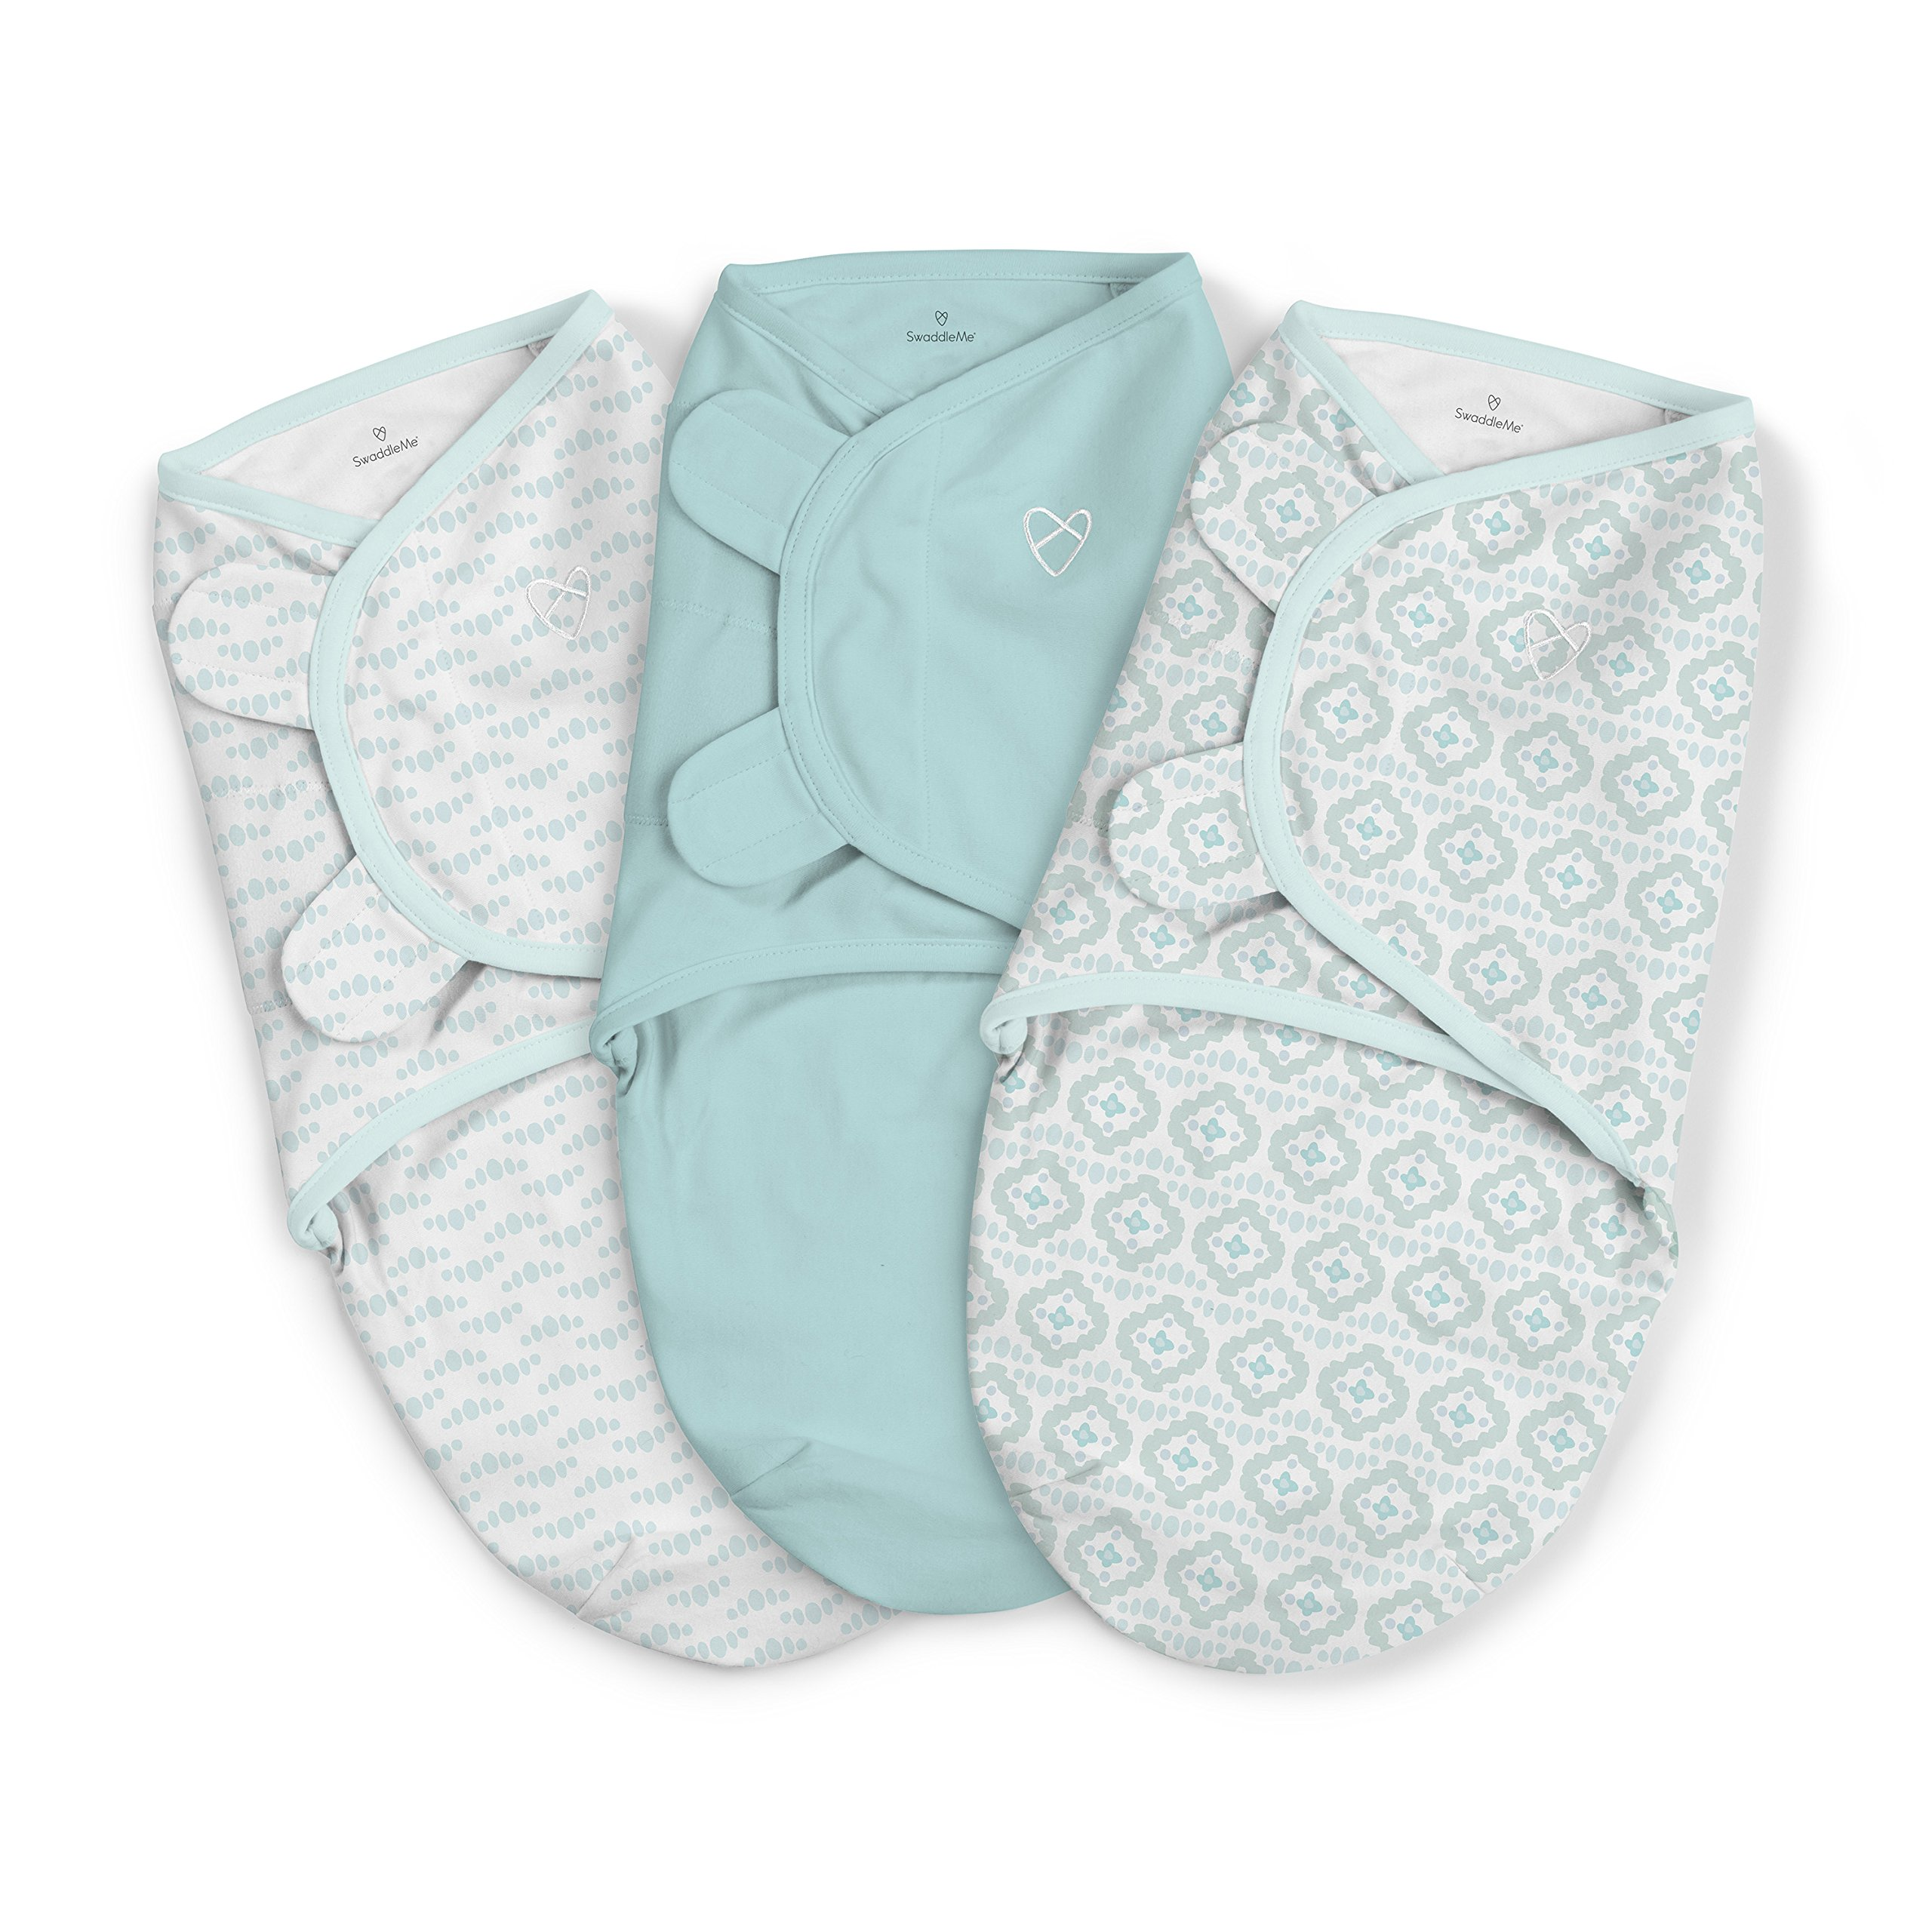 SwaddleMe Original Swaddle 3-PK, Newport Shores, Small by SwaddleMe